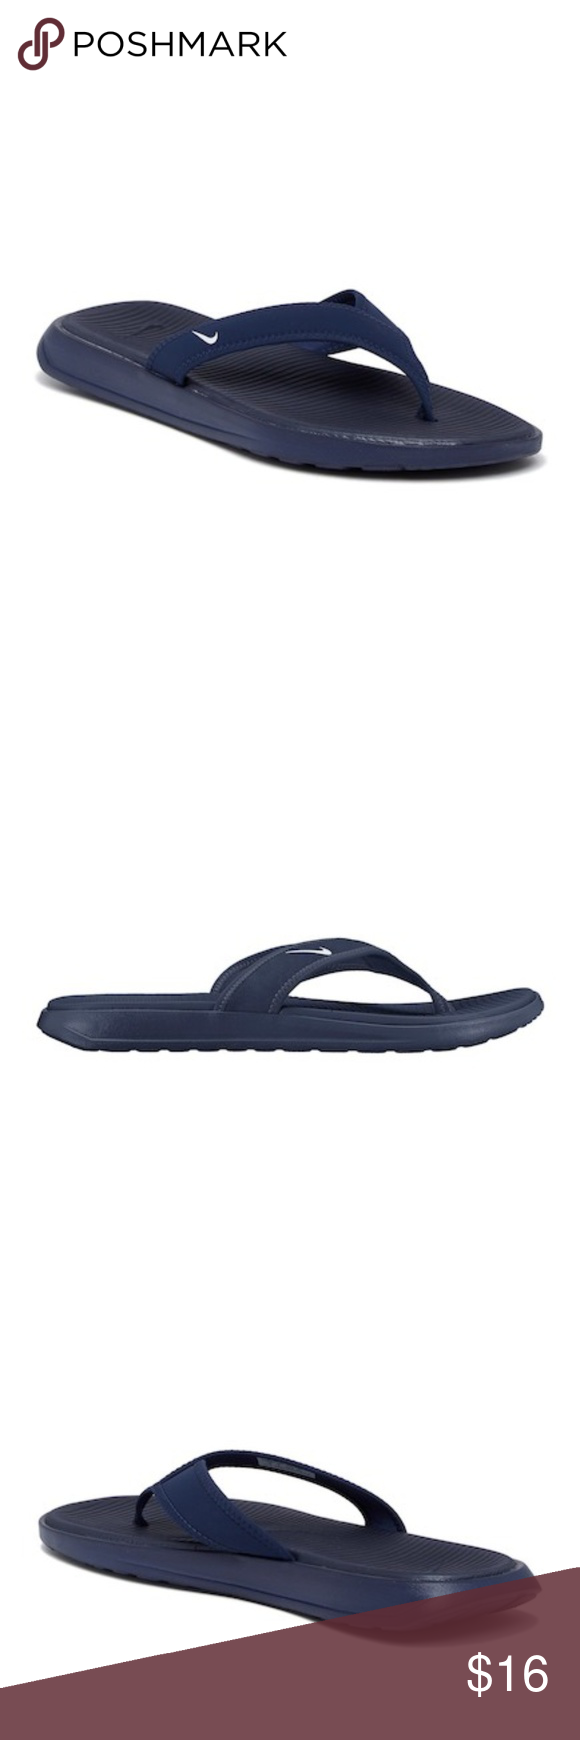 621cc424b61eb2 NIKE Ultra Celso Men Midnight Navy Thong Sandals Brand New